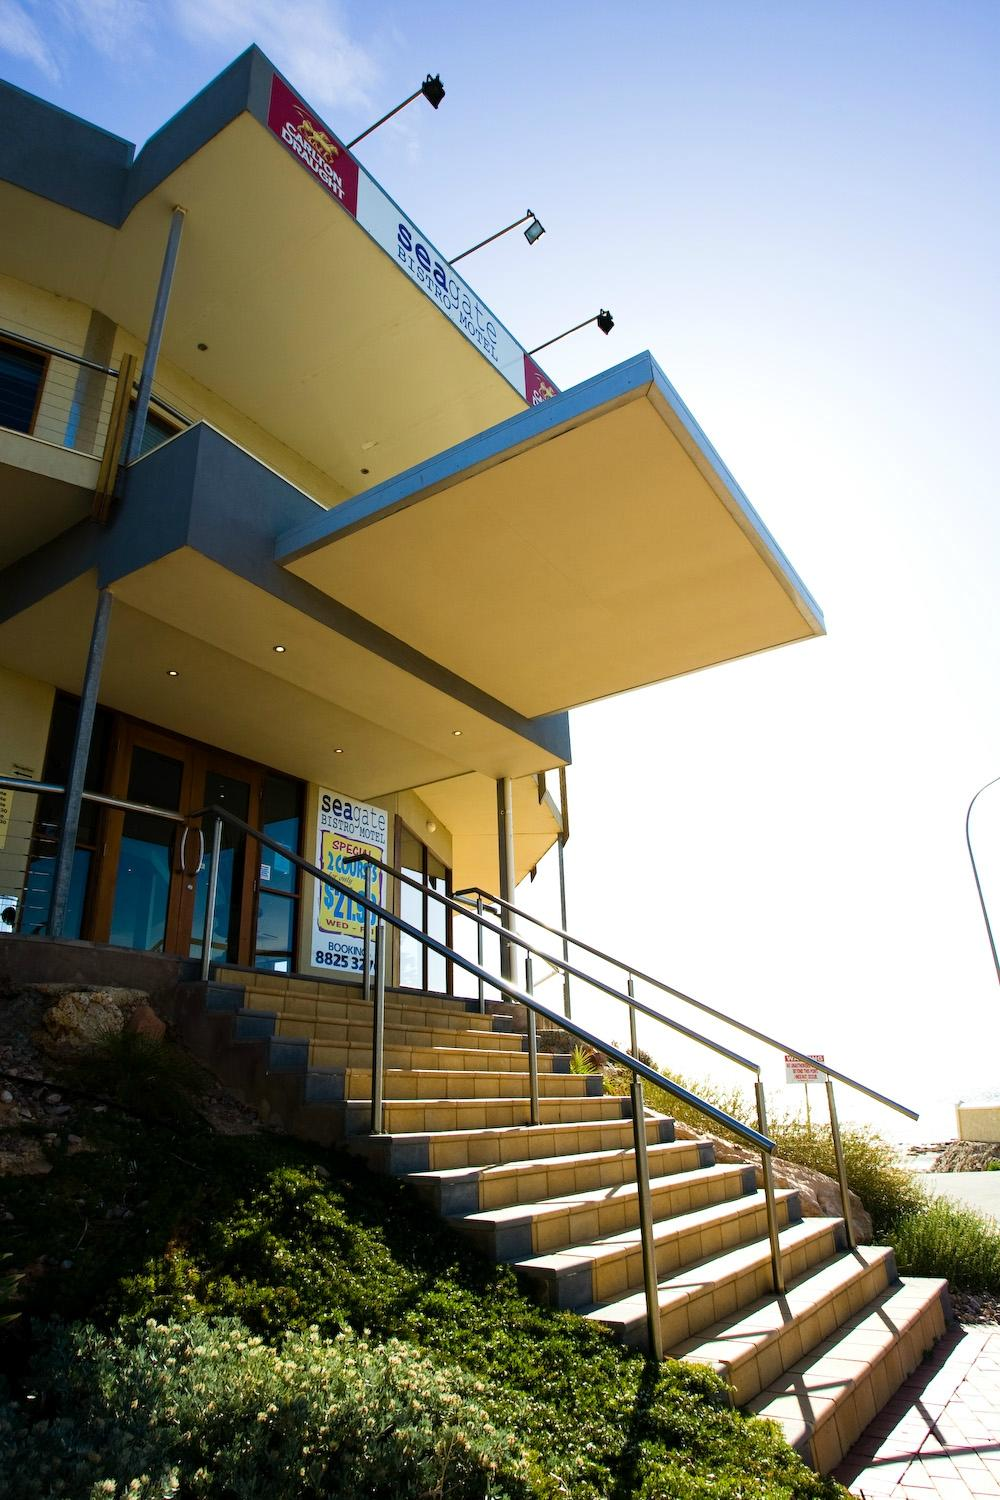 Port Moonta Australia  City pictures : Seagate Moonta Bay Port Moonta, Australia 2016 Prices & Motel ...